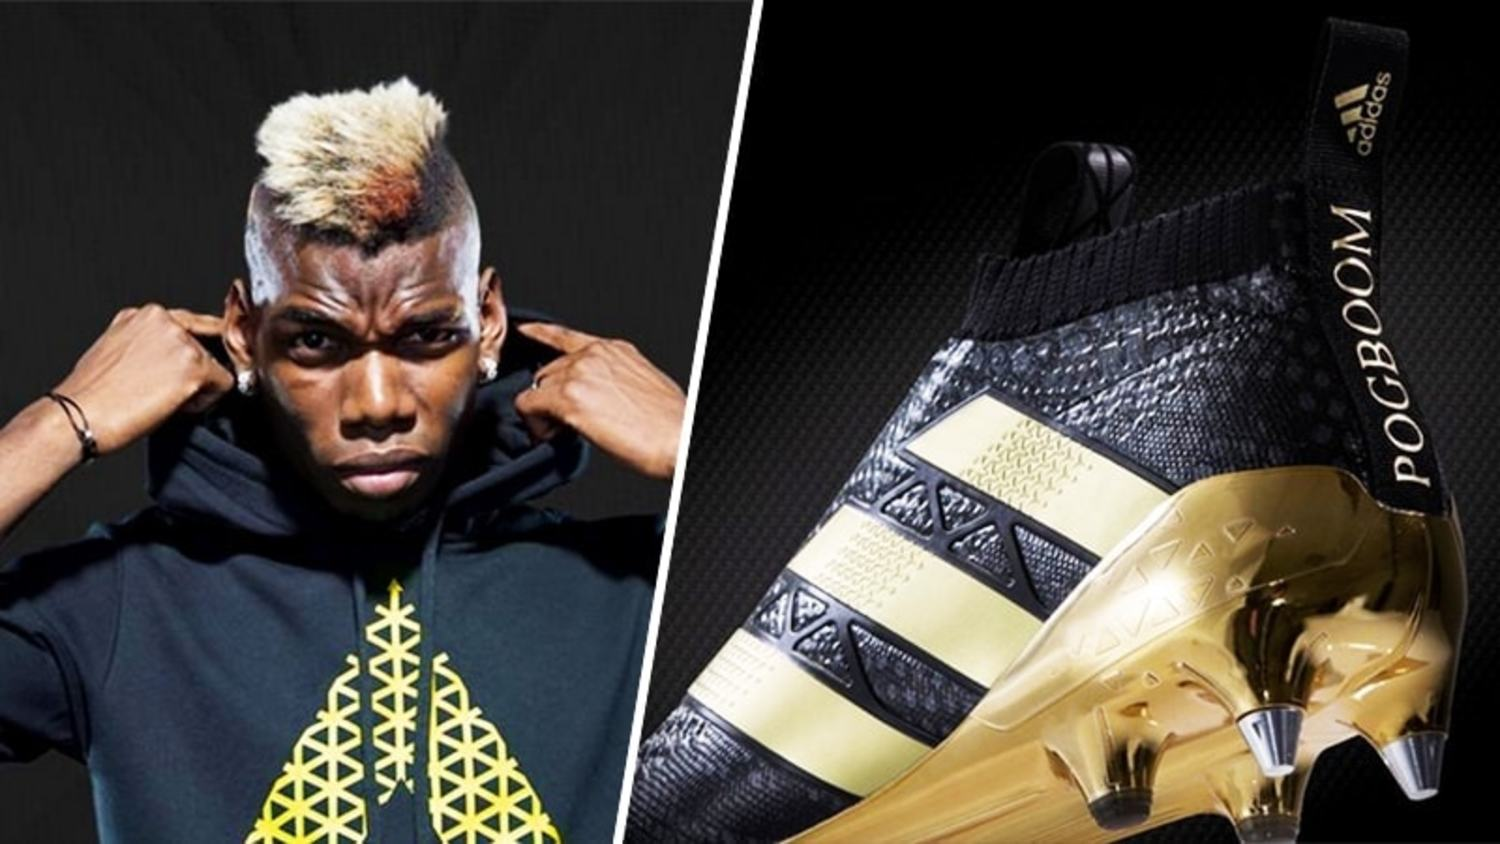 Pogba Joins Adidas, Creates Own Boot: The Boss of Swagger